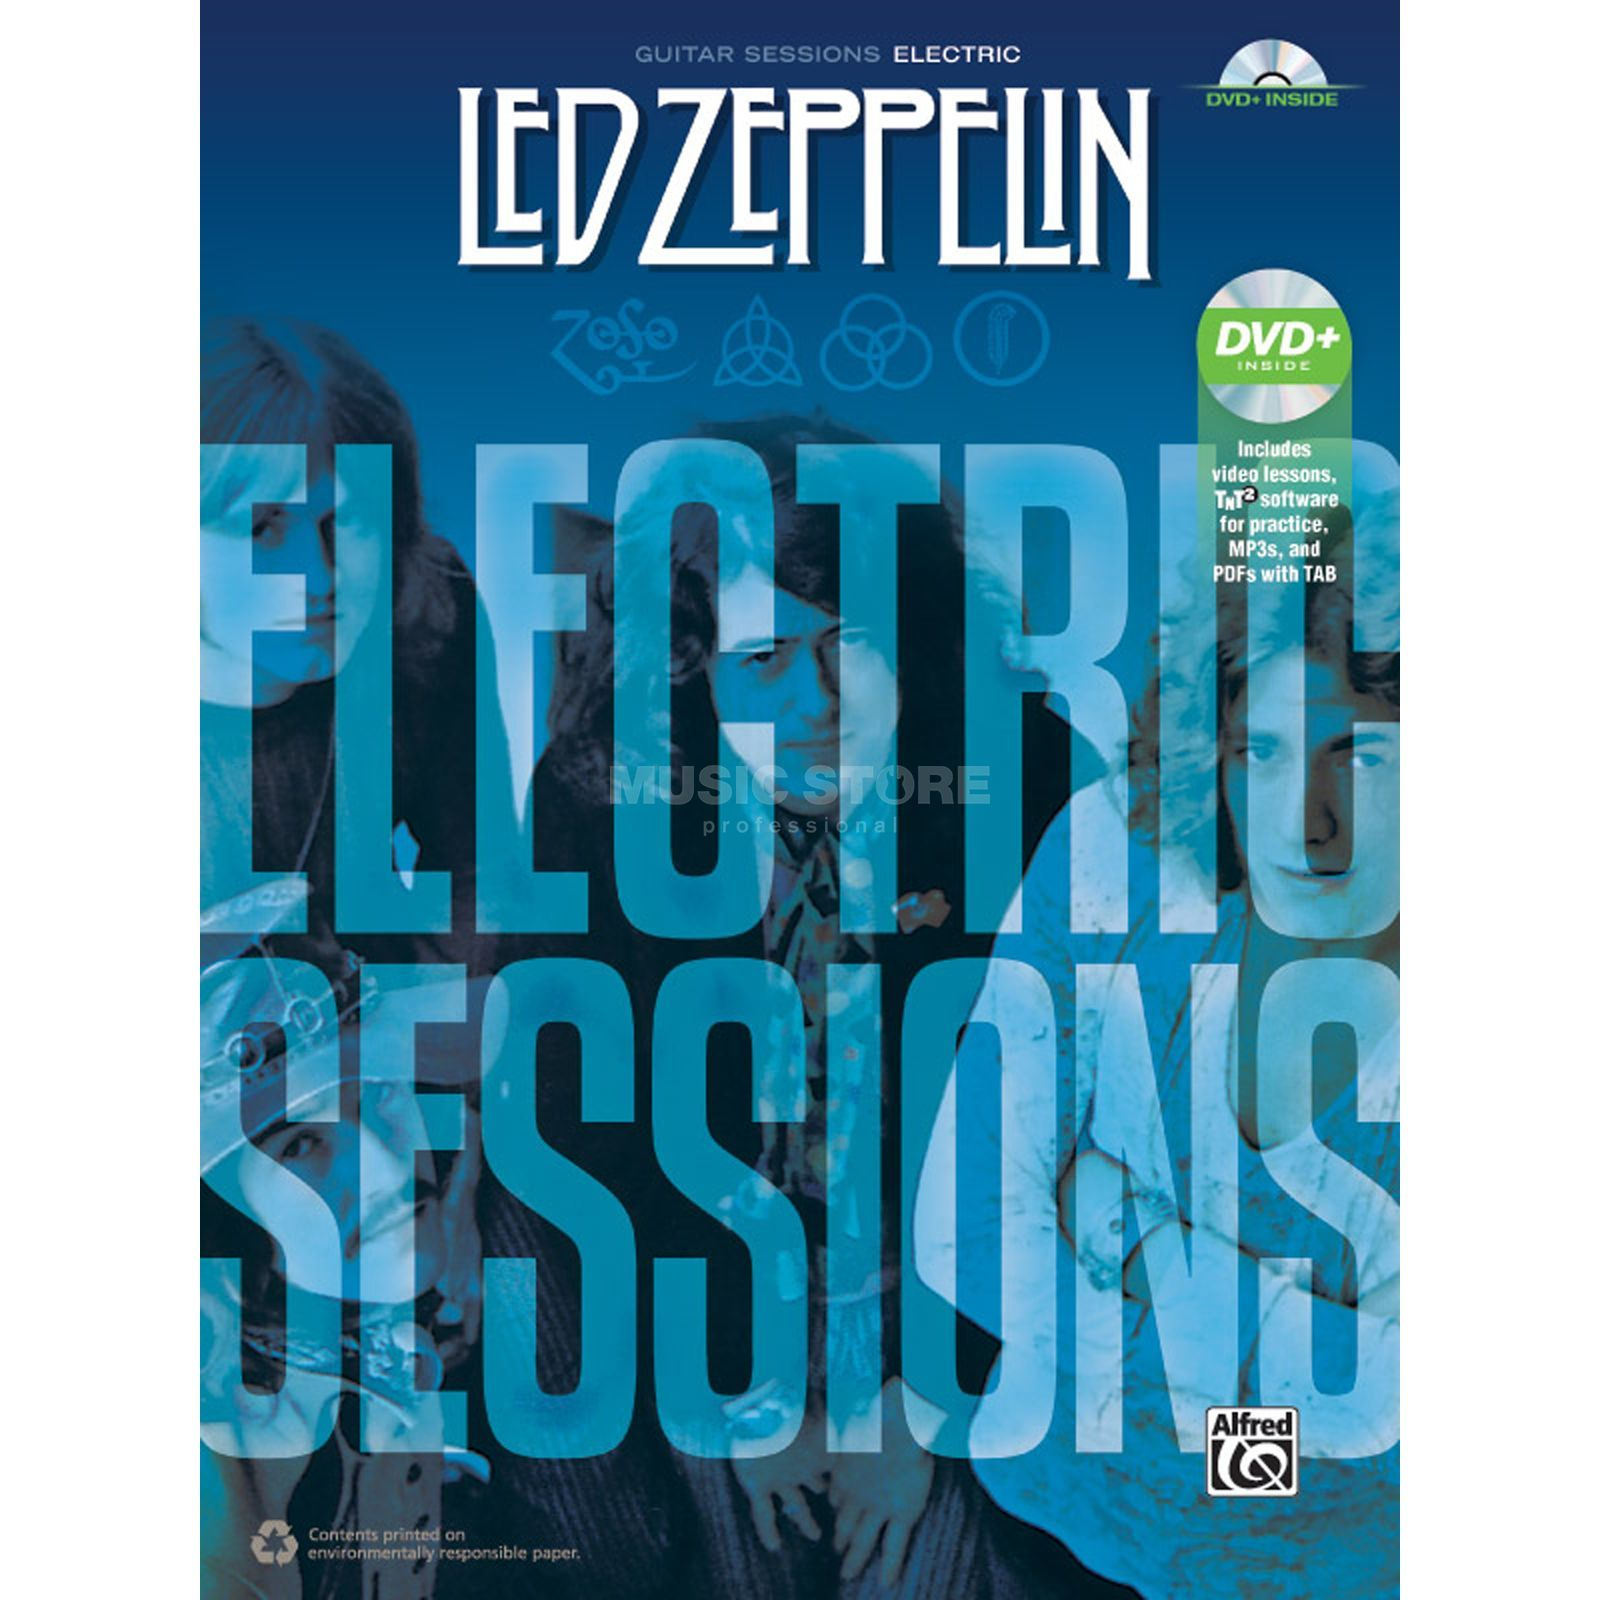 Alfred Music Led Zeppelin: Electric Sessions TAB Produktbild